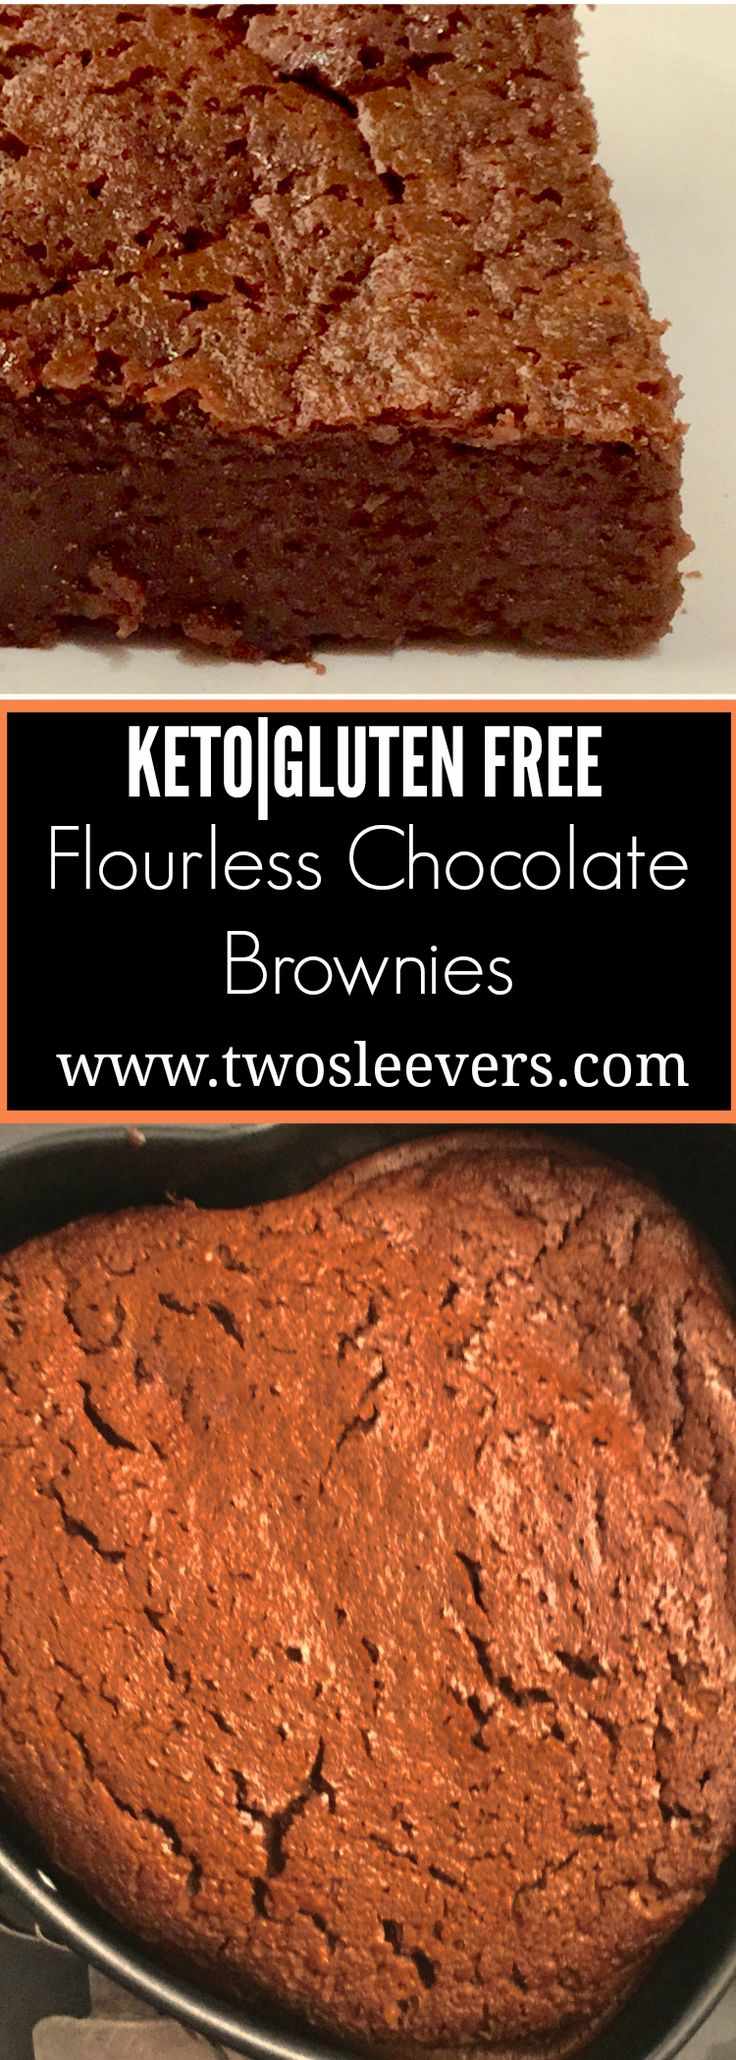 Five Ingredient Keto Flourless Chocolate Brownies  Five Ingredient Keto Flourless brownies are moist, delicious, and have 3 gms of carbs per serving. These taste just like the real thing! Two Sleevers